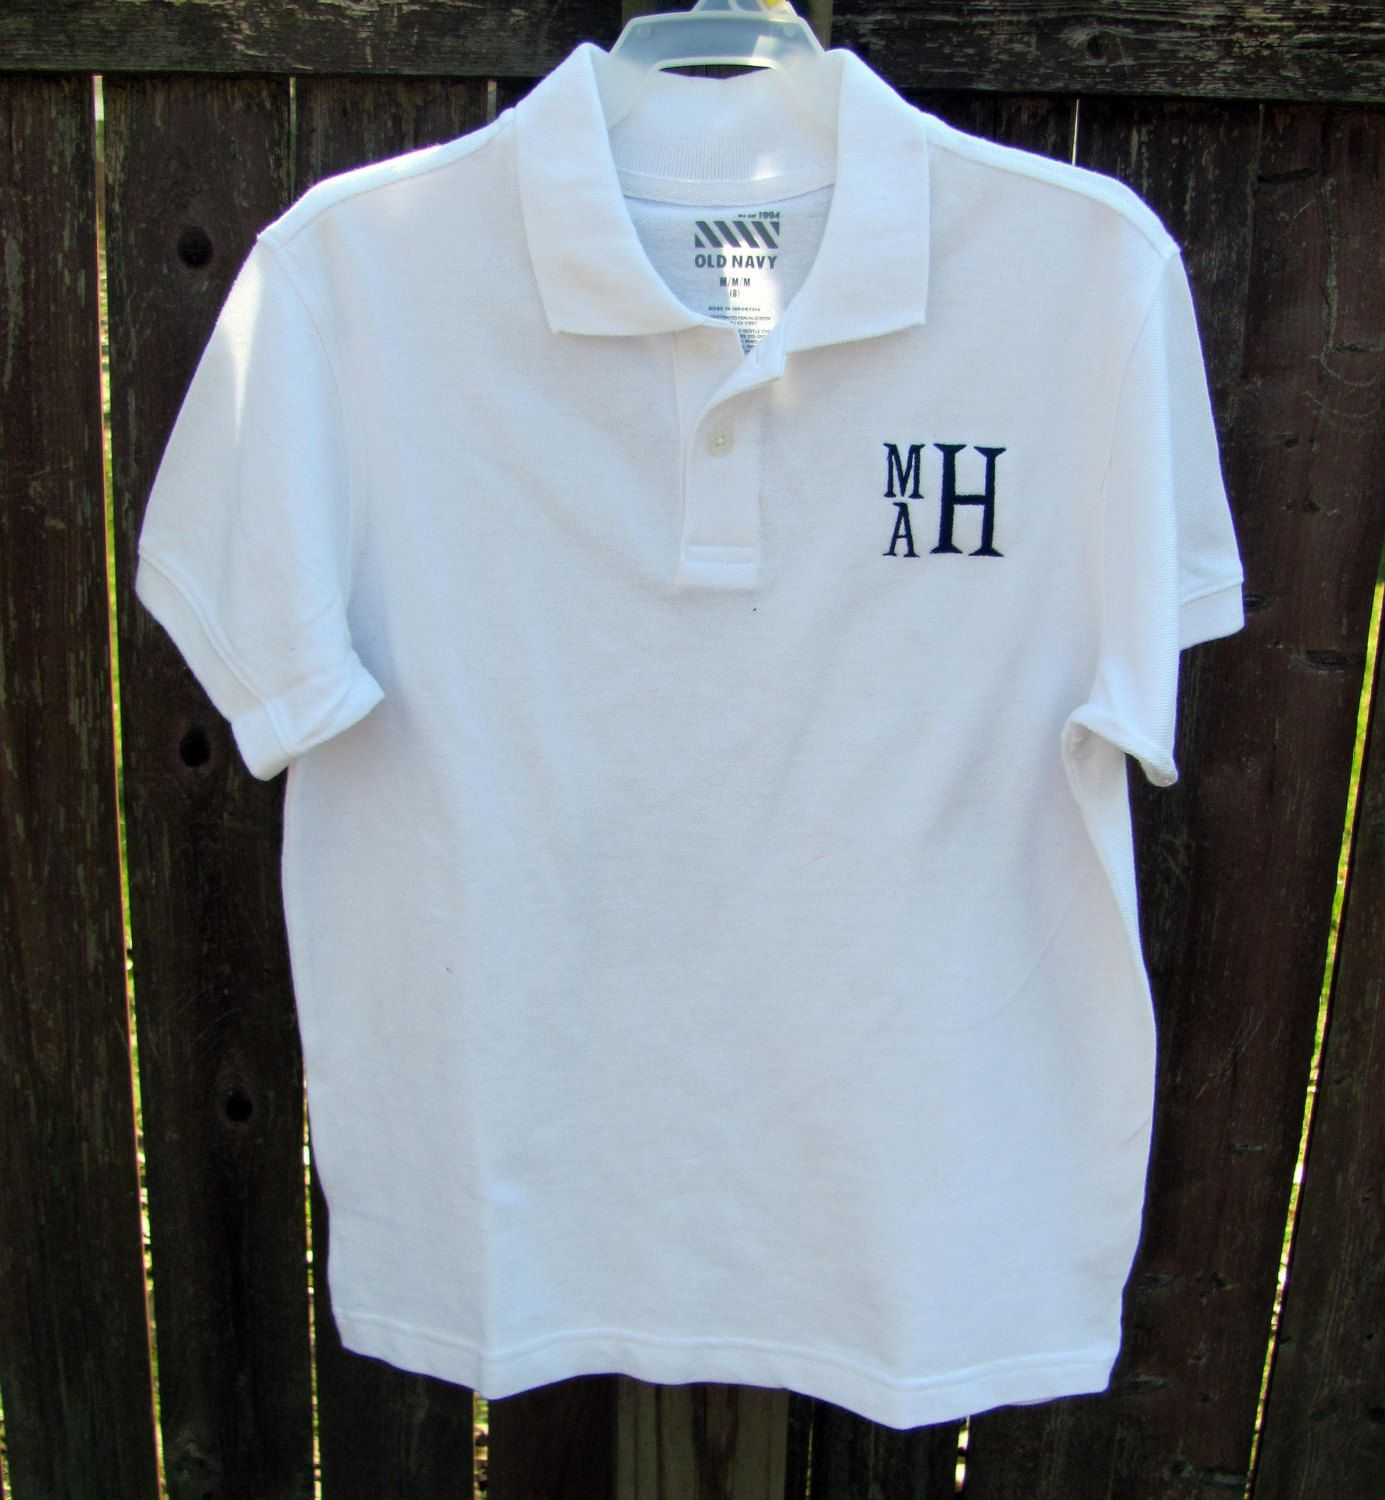 Post Polo Shirt As Large Letter